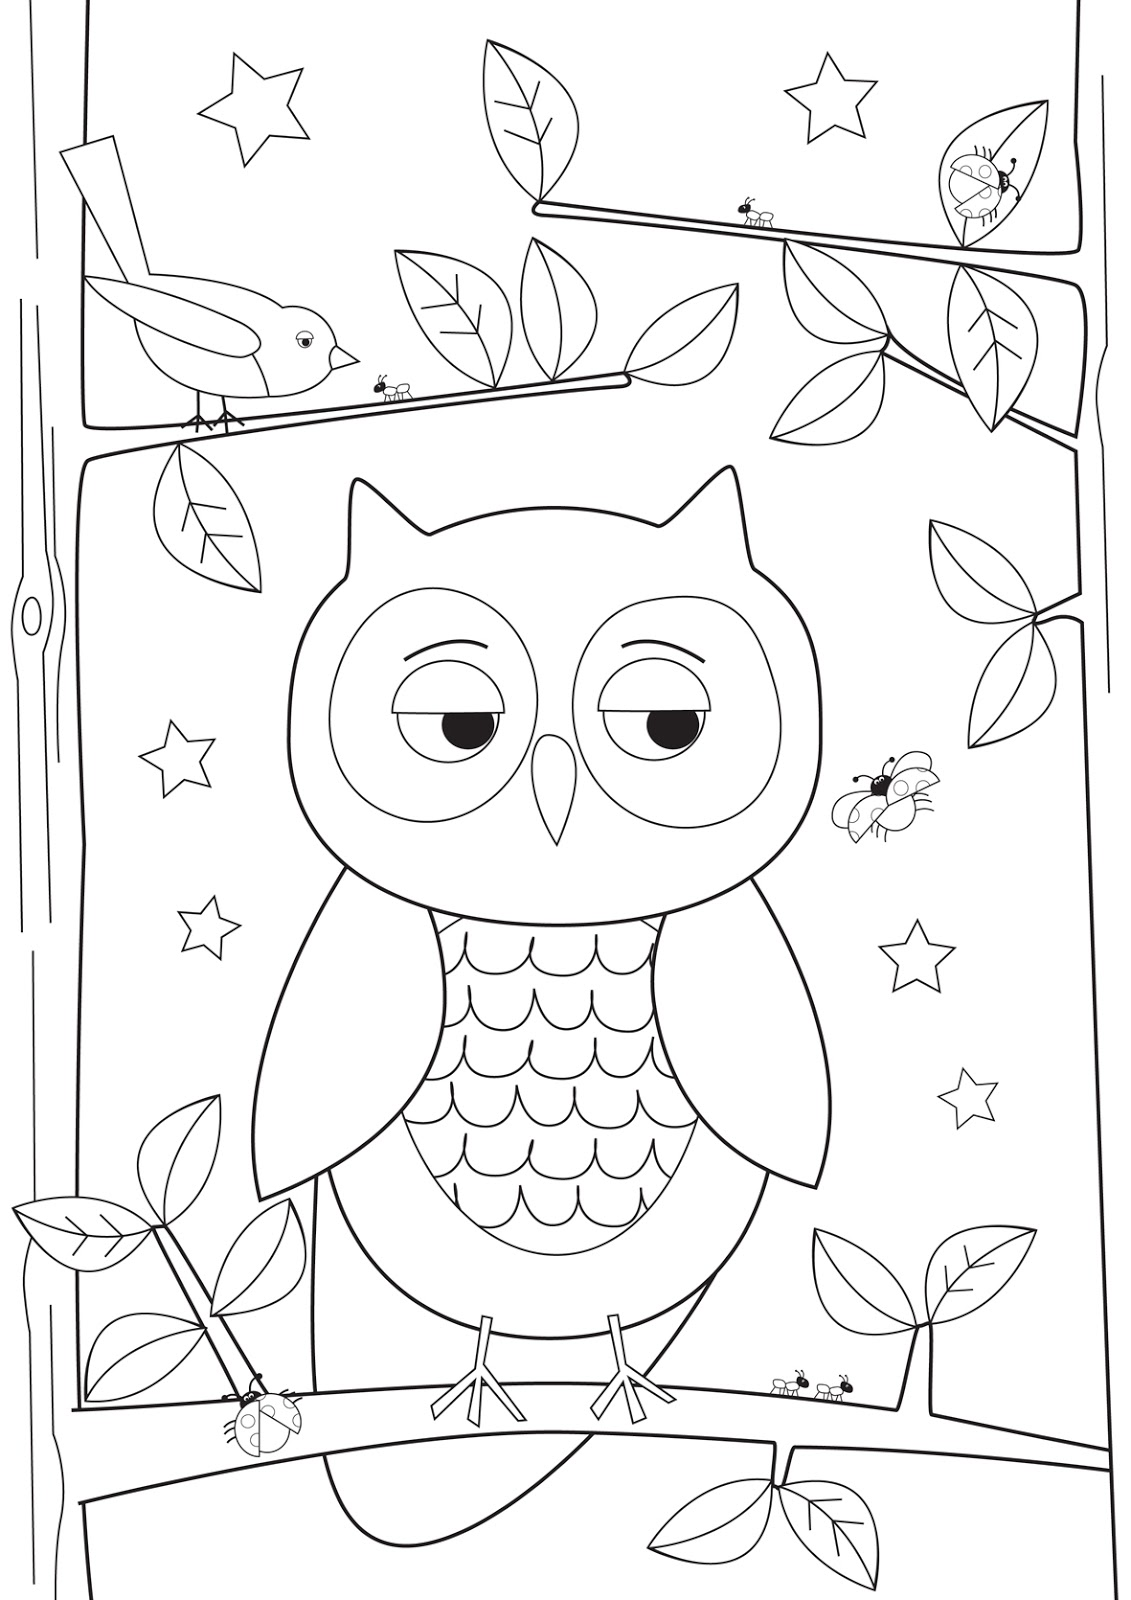 freebie colour me in sleepy owl - Picture Outlines For Colouring